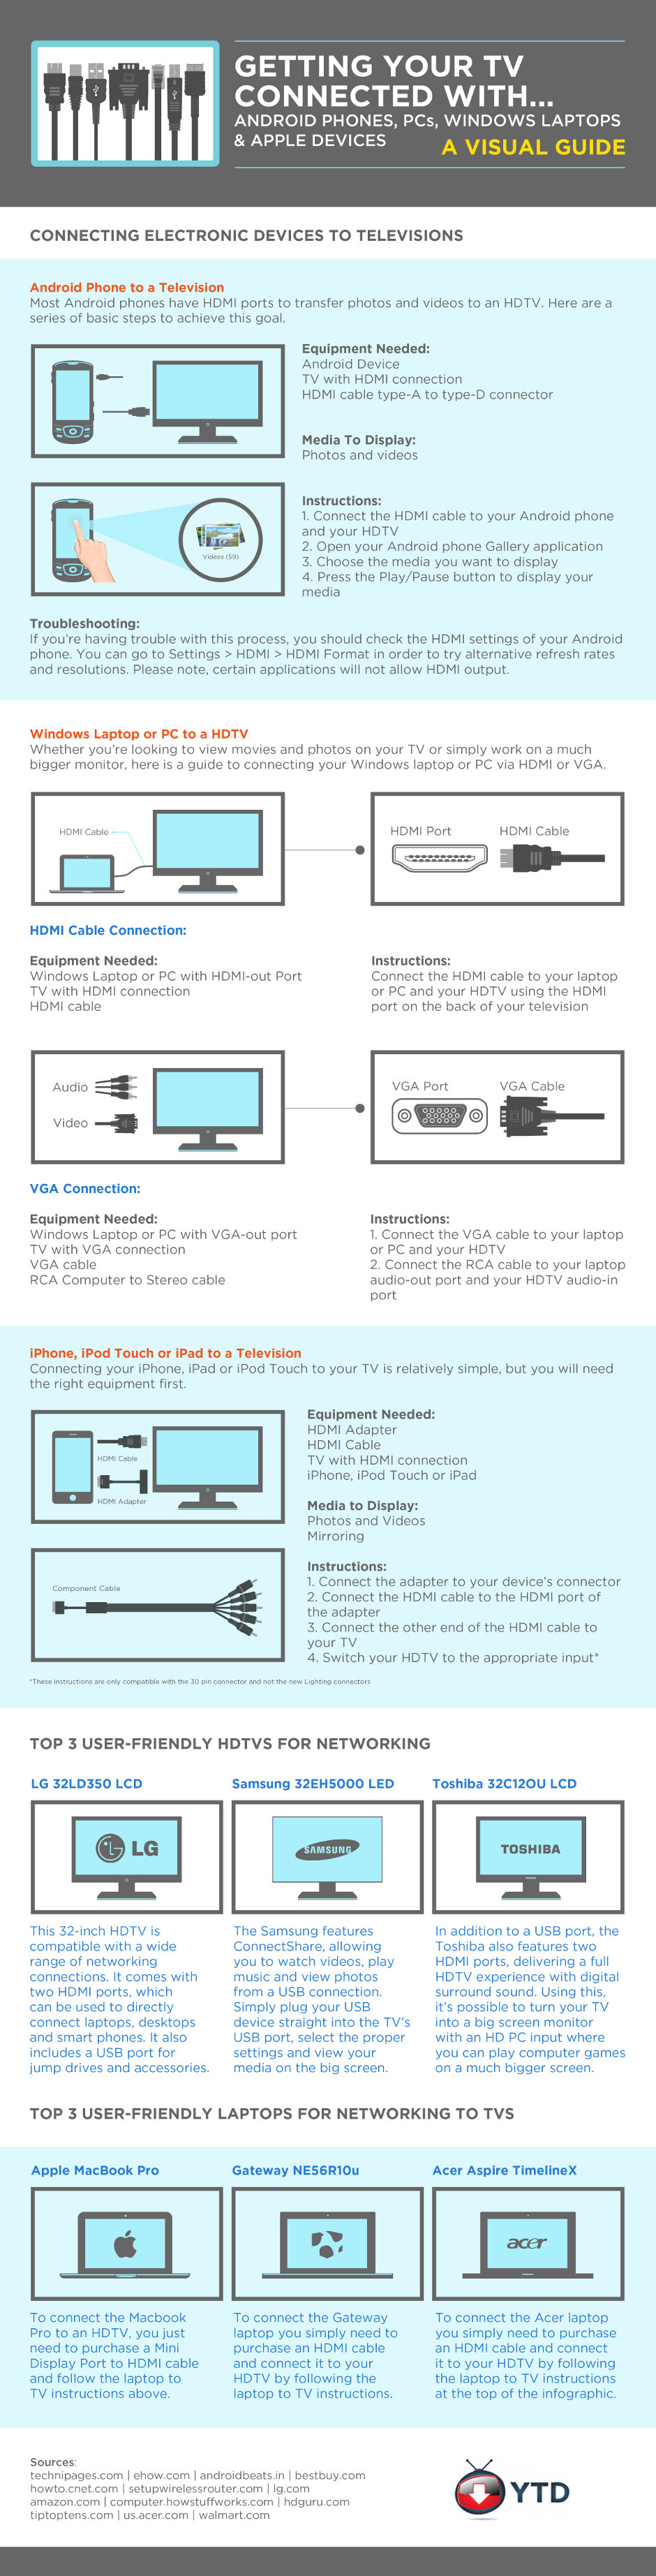 Infographic: Getting Your TV Connected With Android Phones, PCs, Apple Devices and More #infographic